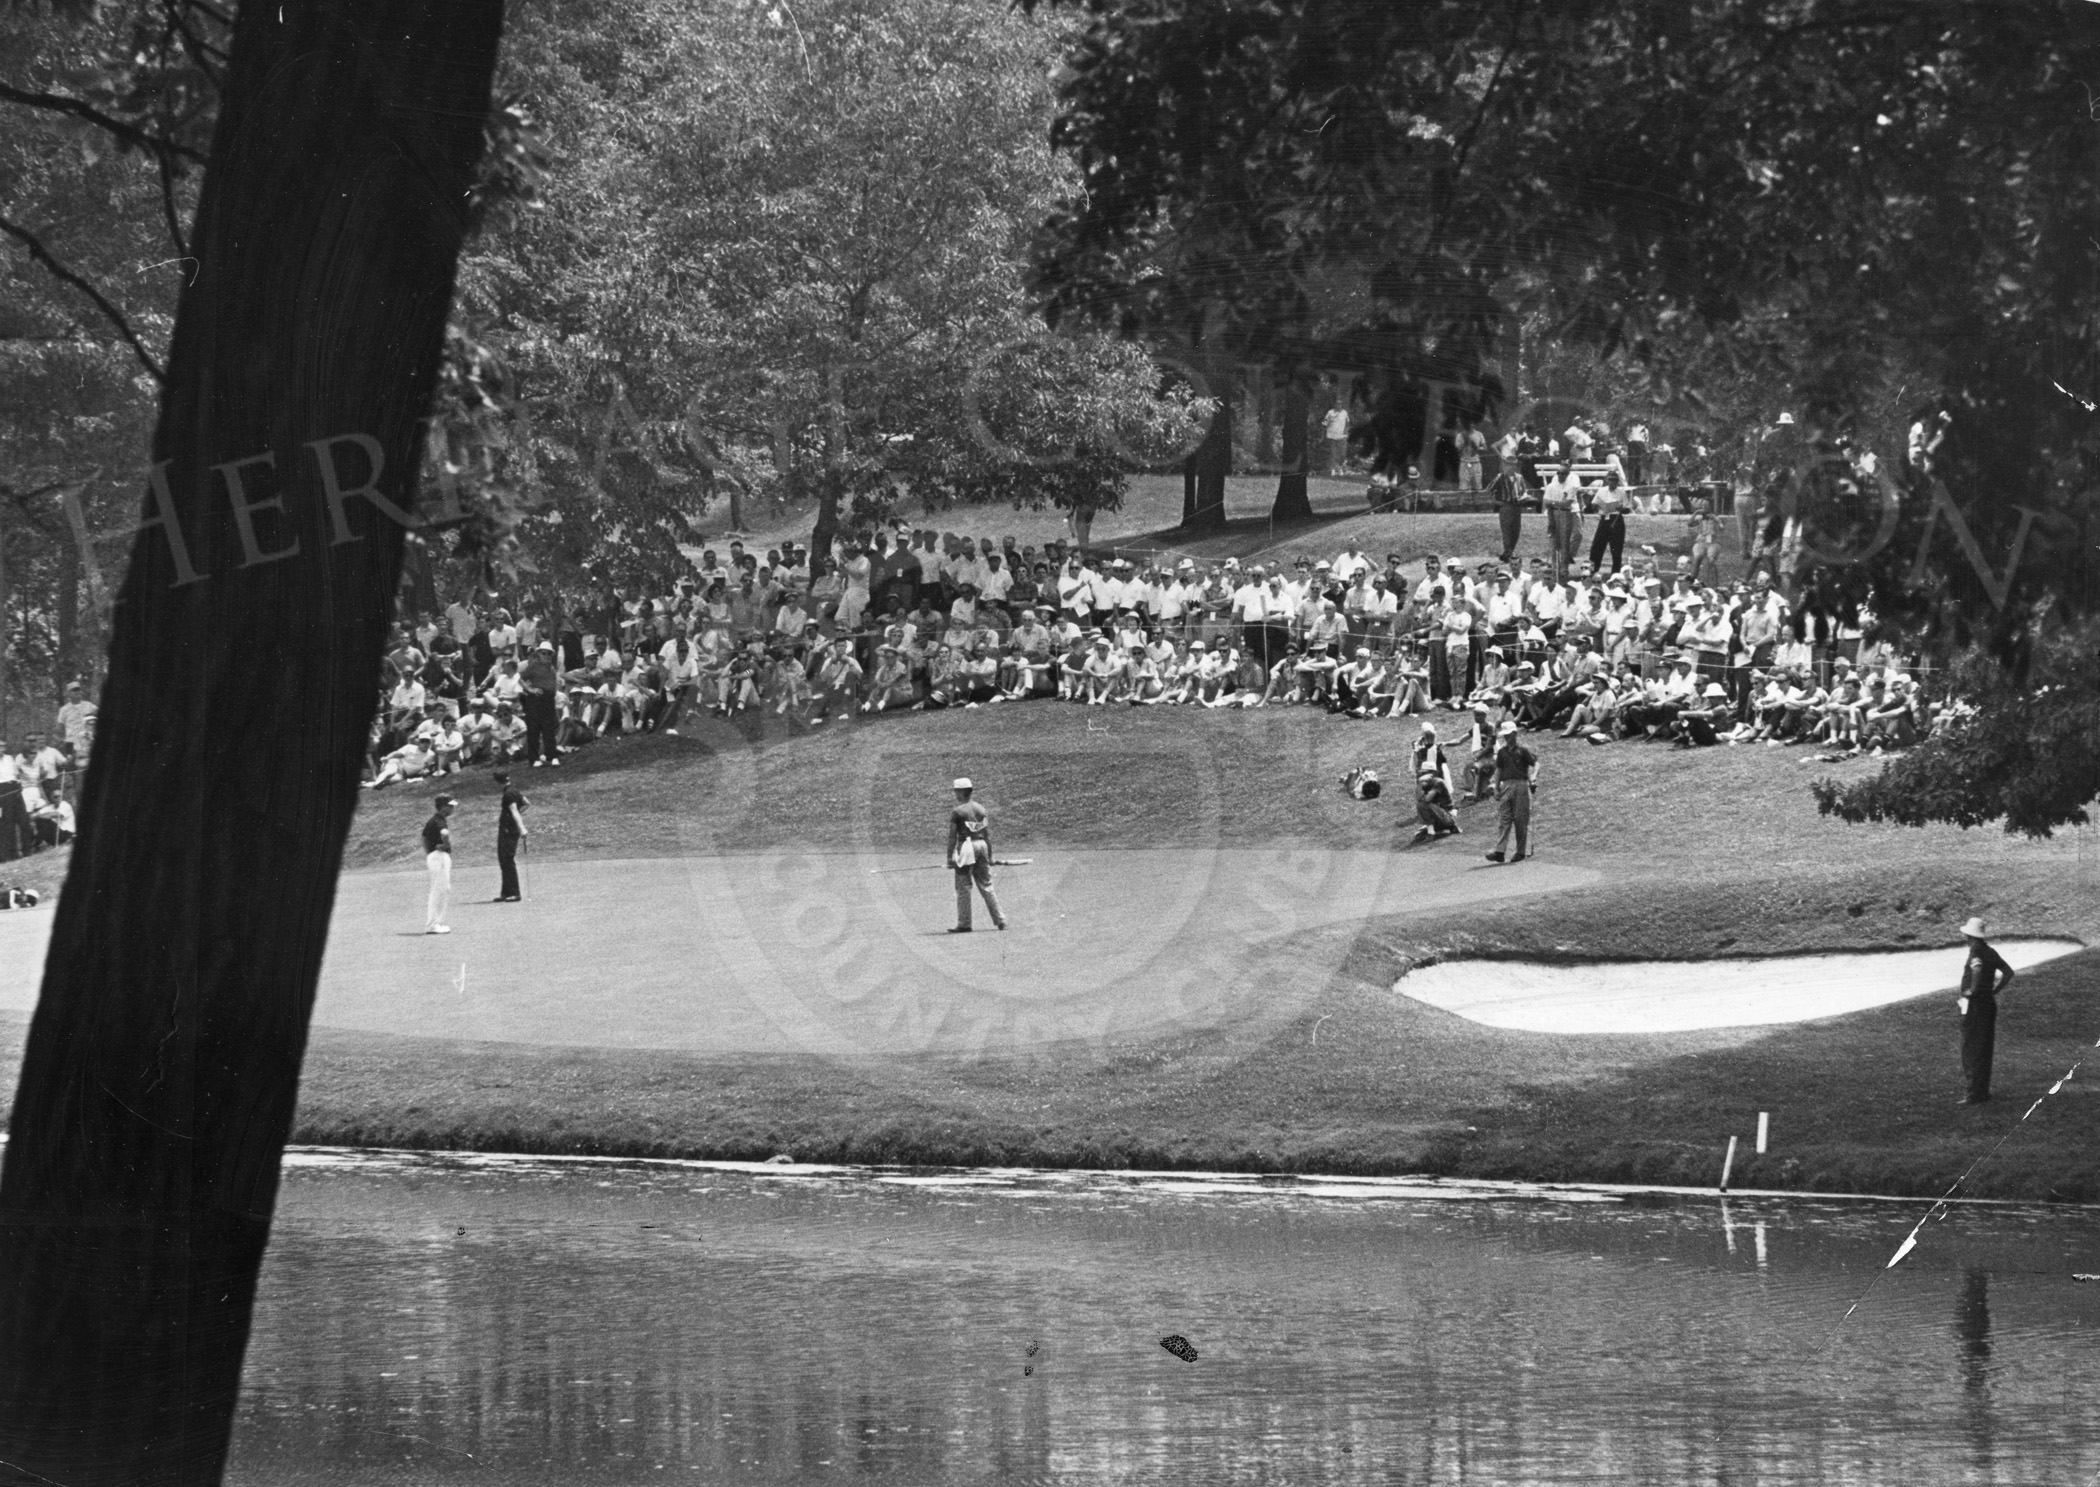 Scenic view over Lake Kadijah to the 2nd green during the 1962 Western Open. Jacky Cupit, Gary Player, and Harold Kneele are the players on the green June 30, 1962